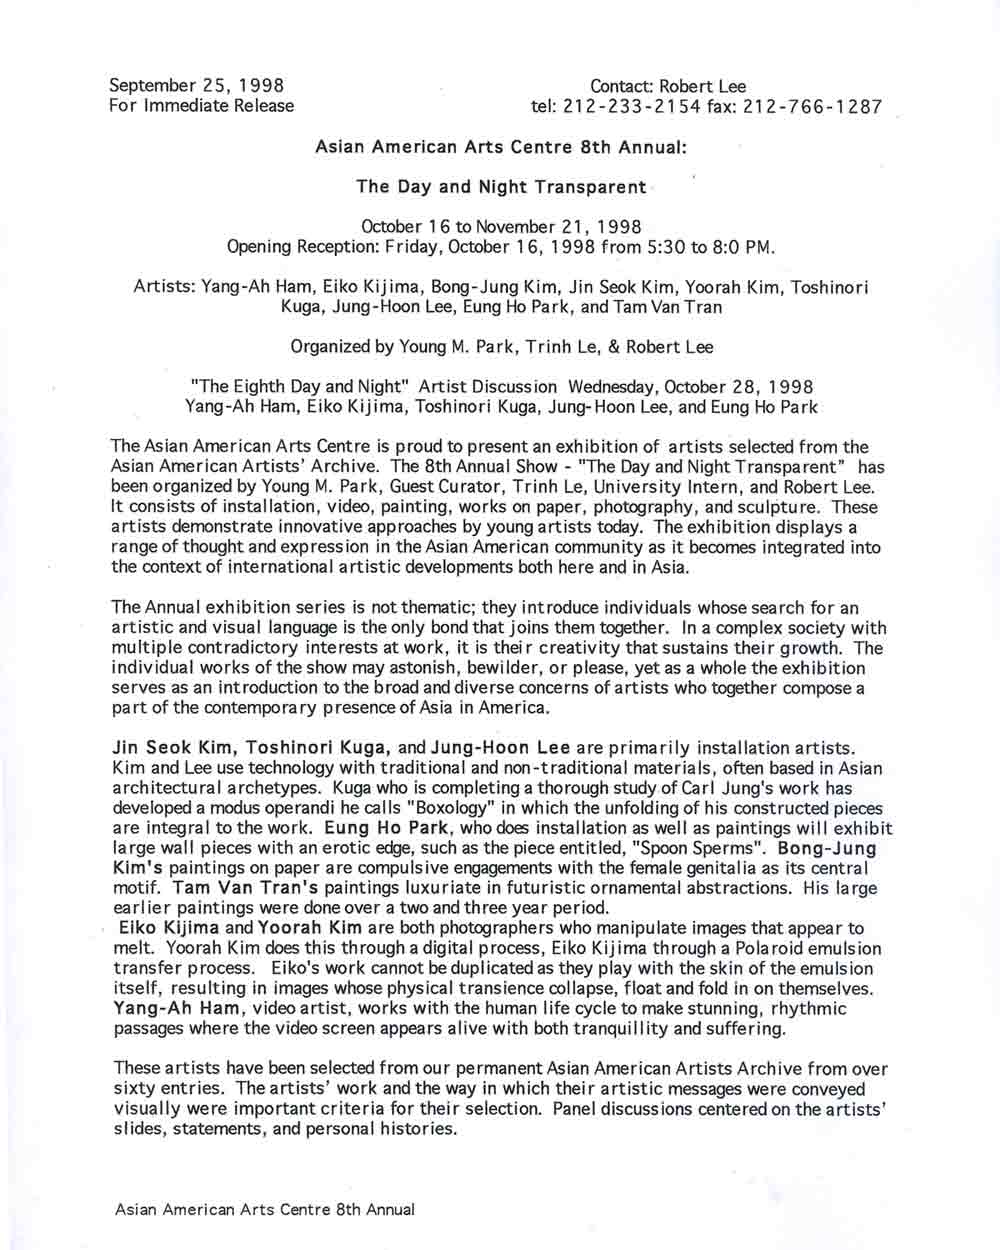 Day and Night Transparent press release, pg 1